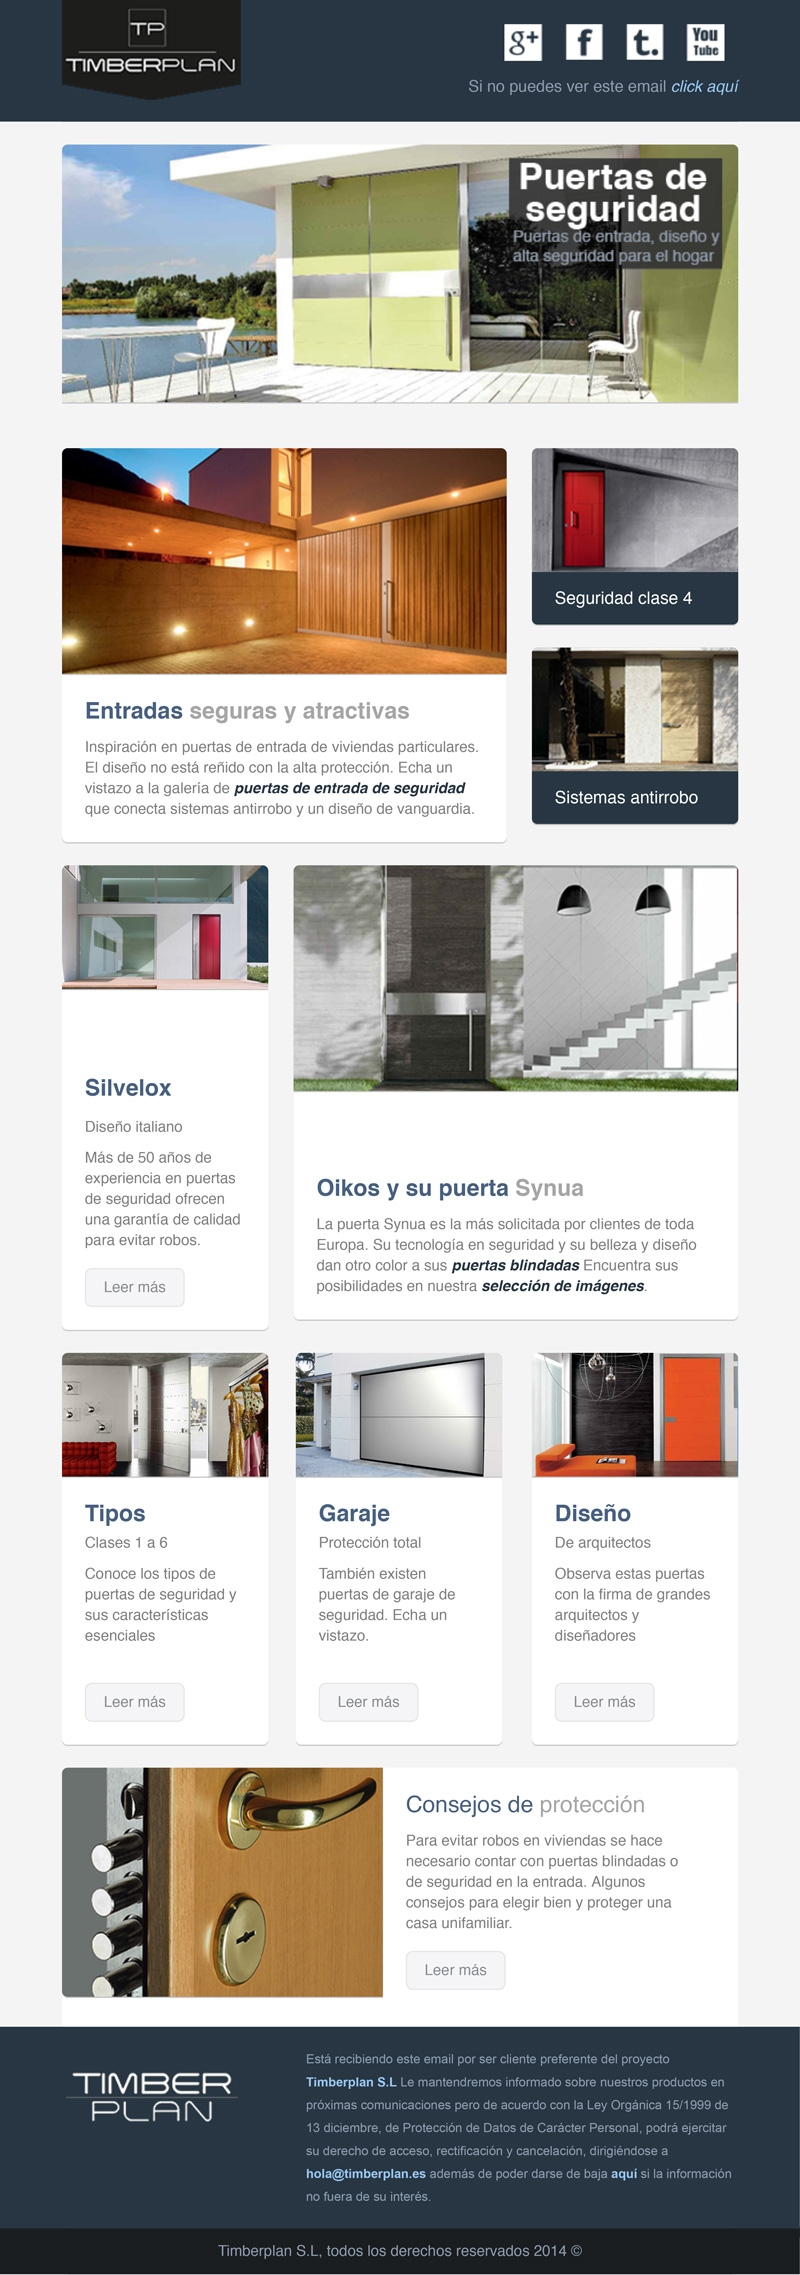 Timberplan Newsletter Marzo 800x2275 c